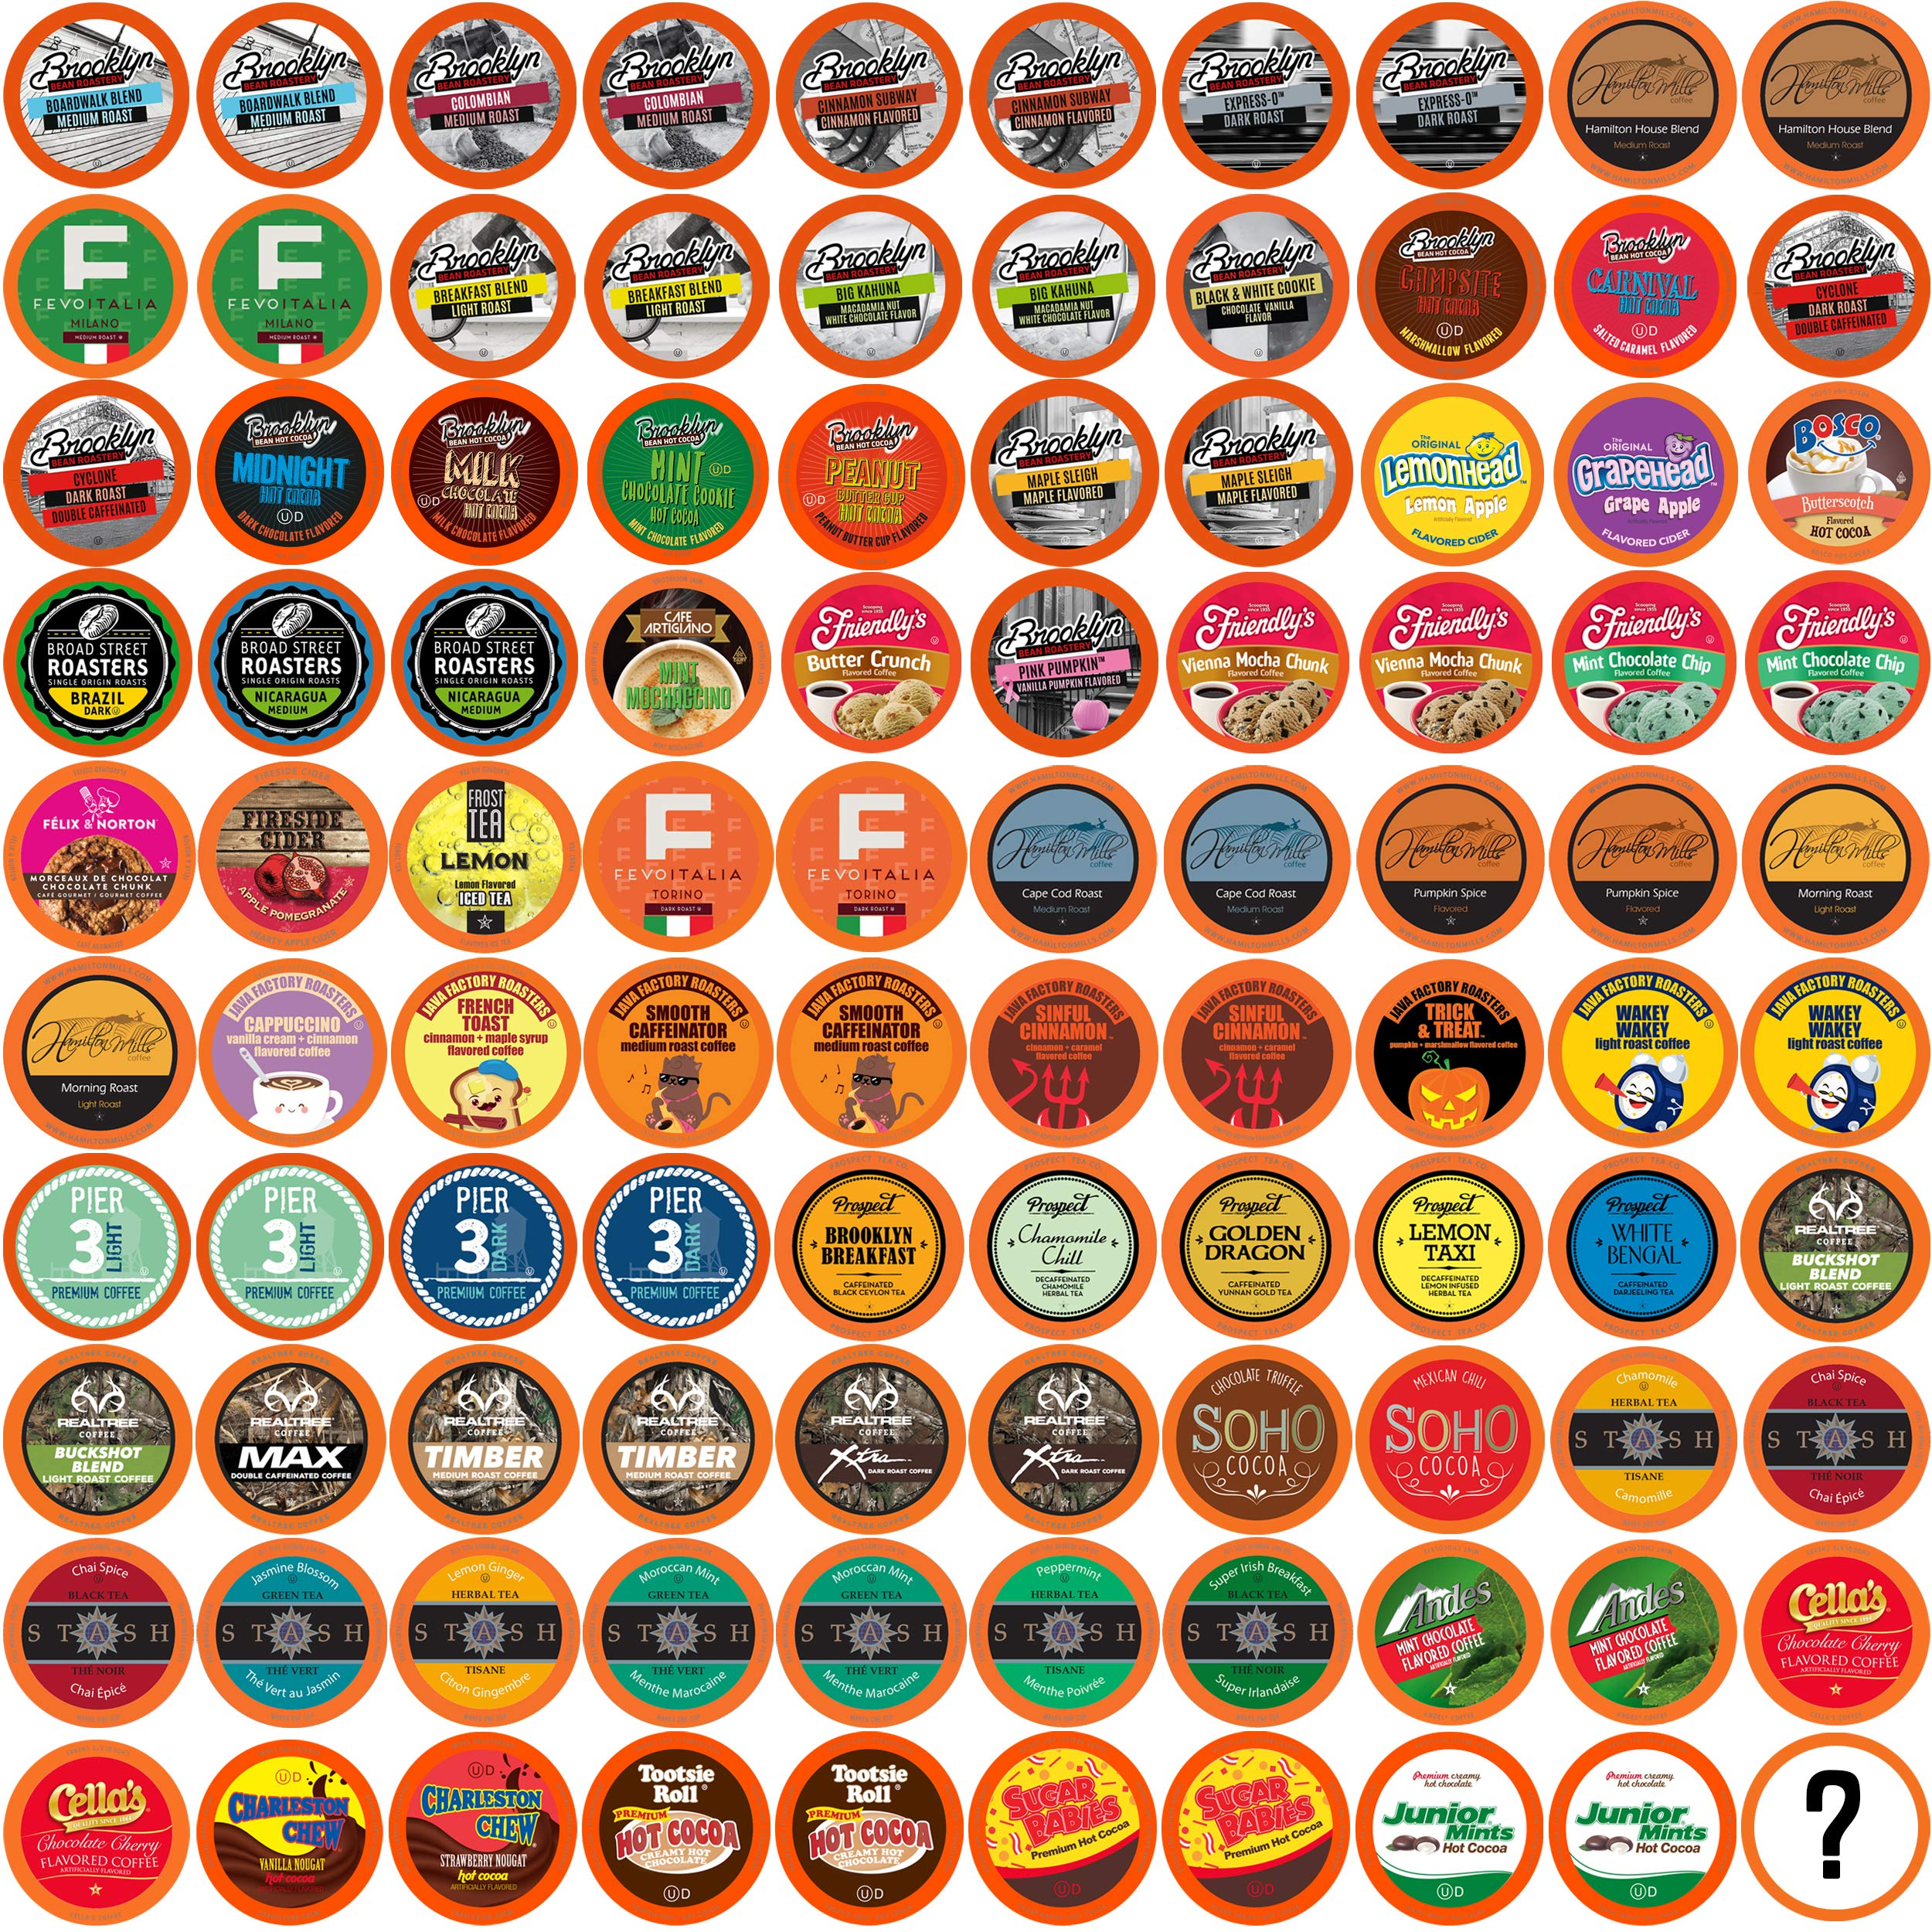 Two Rivers Bit of Everything Single-Cup Sampler Pack for Keurig K-Cup Brewers, 100 Count